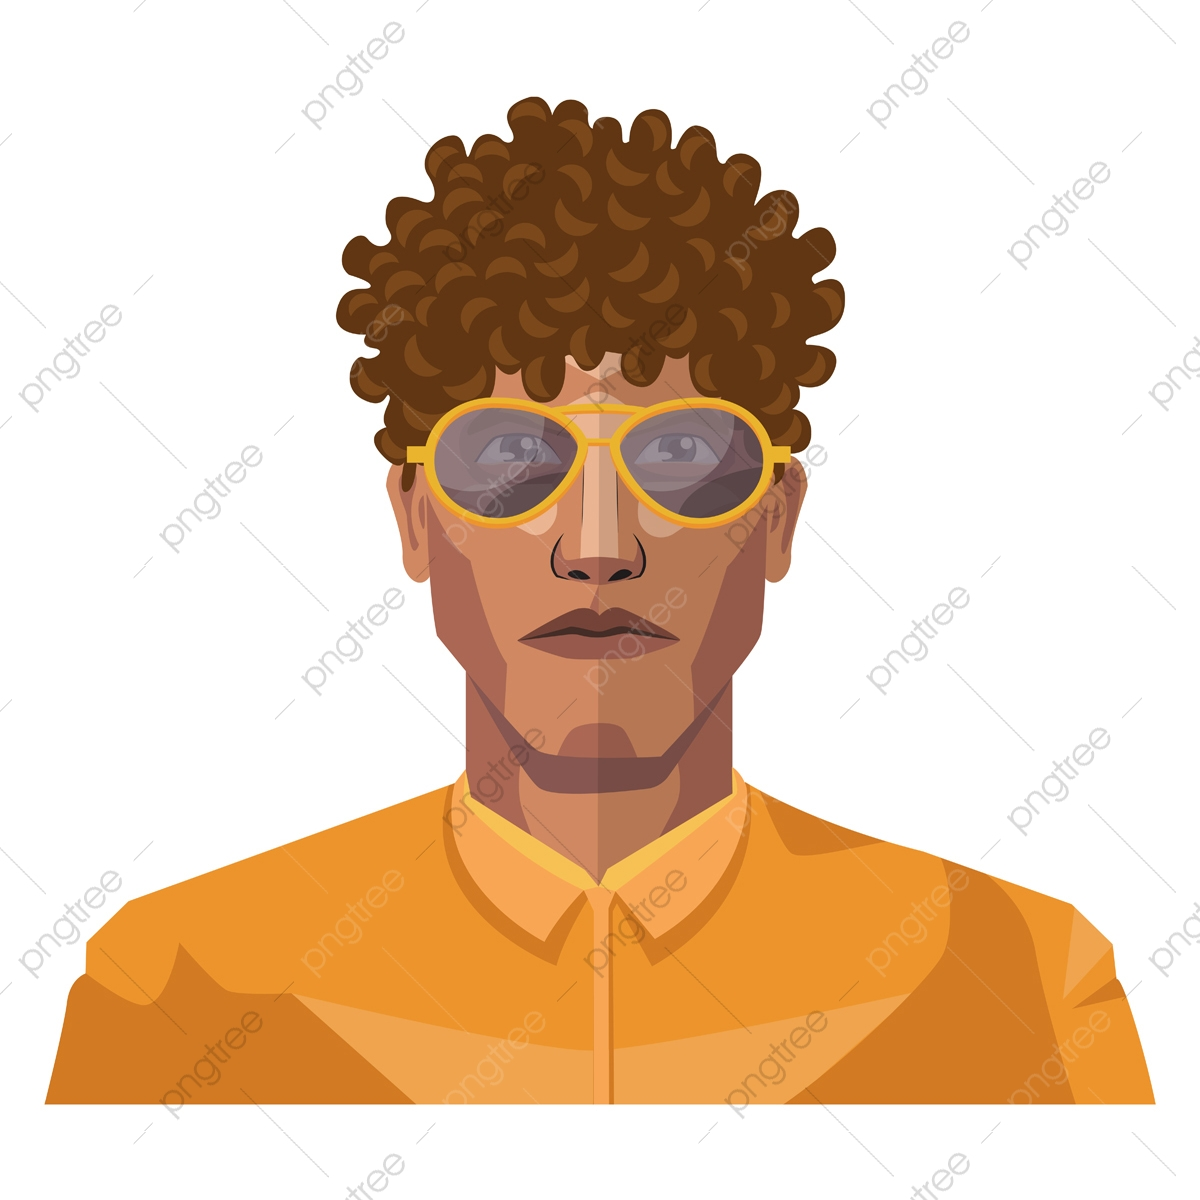 Handsome Guy With Short Curly Hair Illustration Vector On White Handsome Smile Portrait Png And Vector With Transparent Background For Free Download